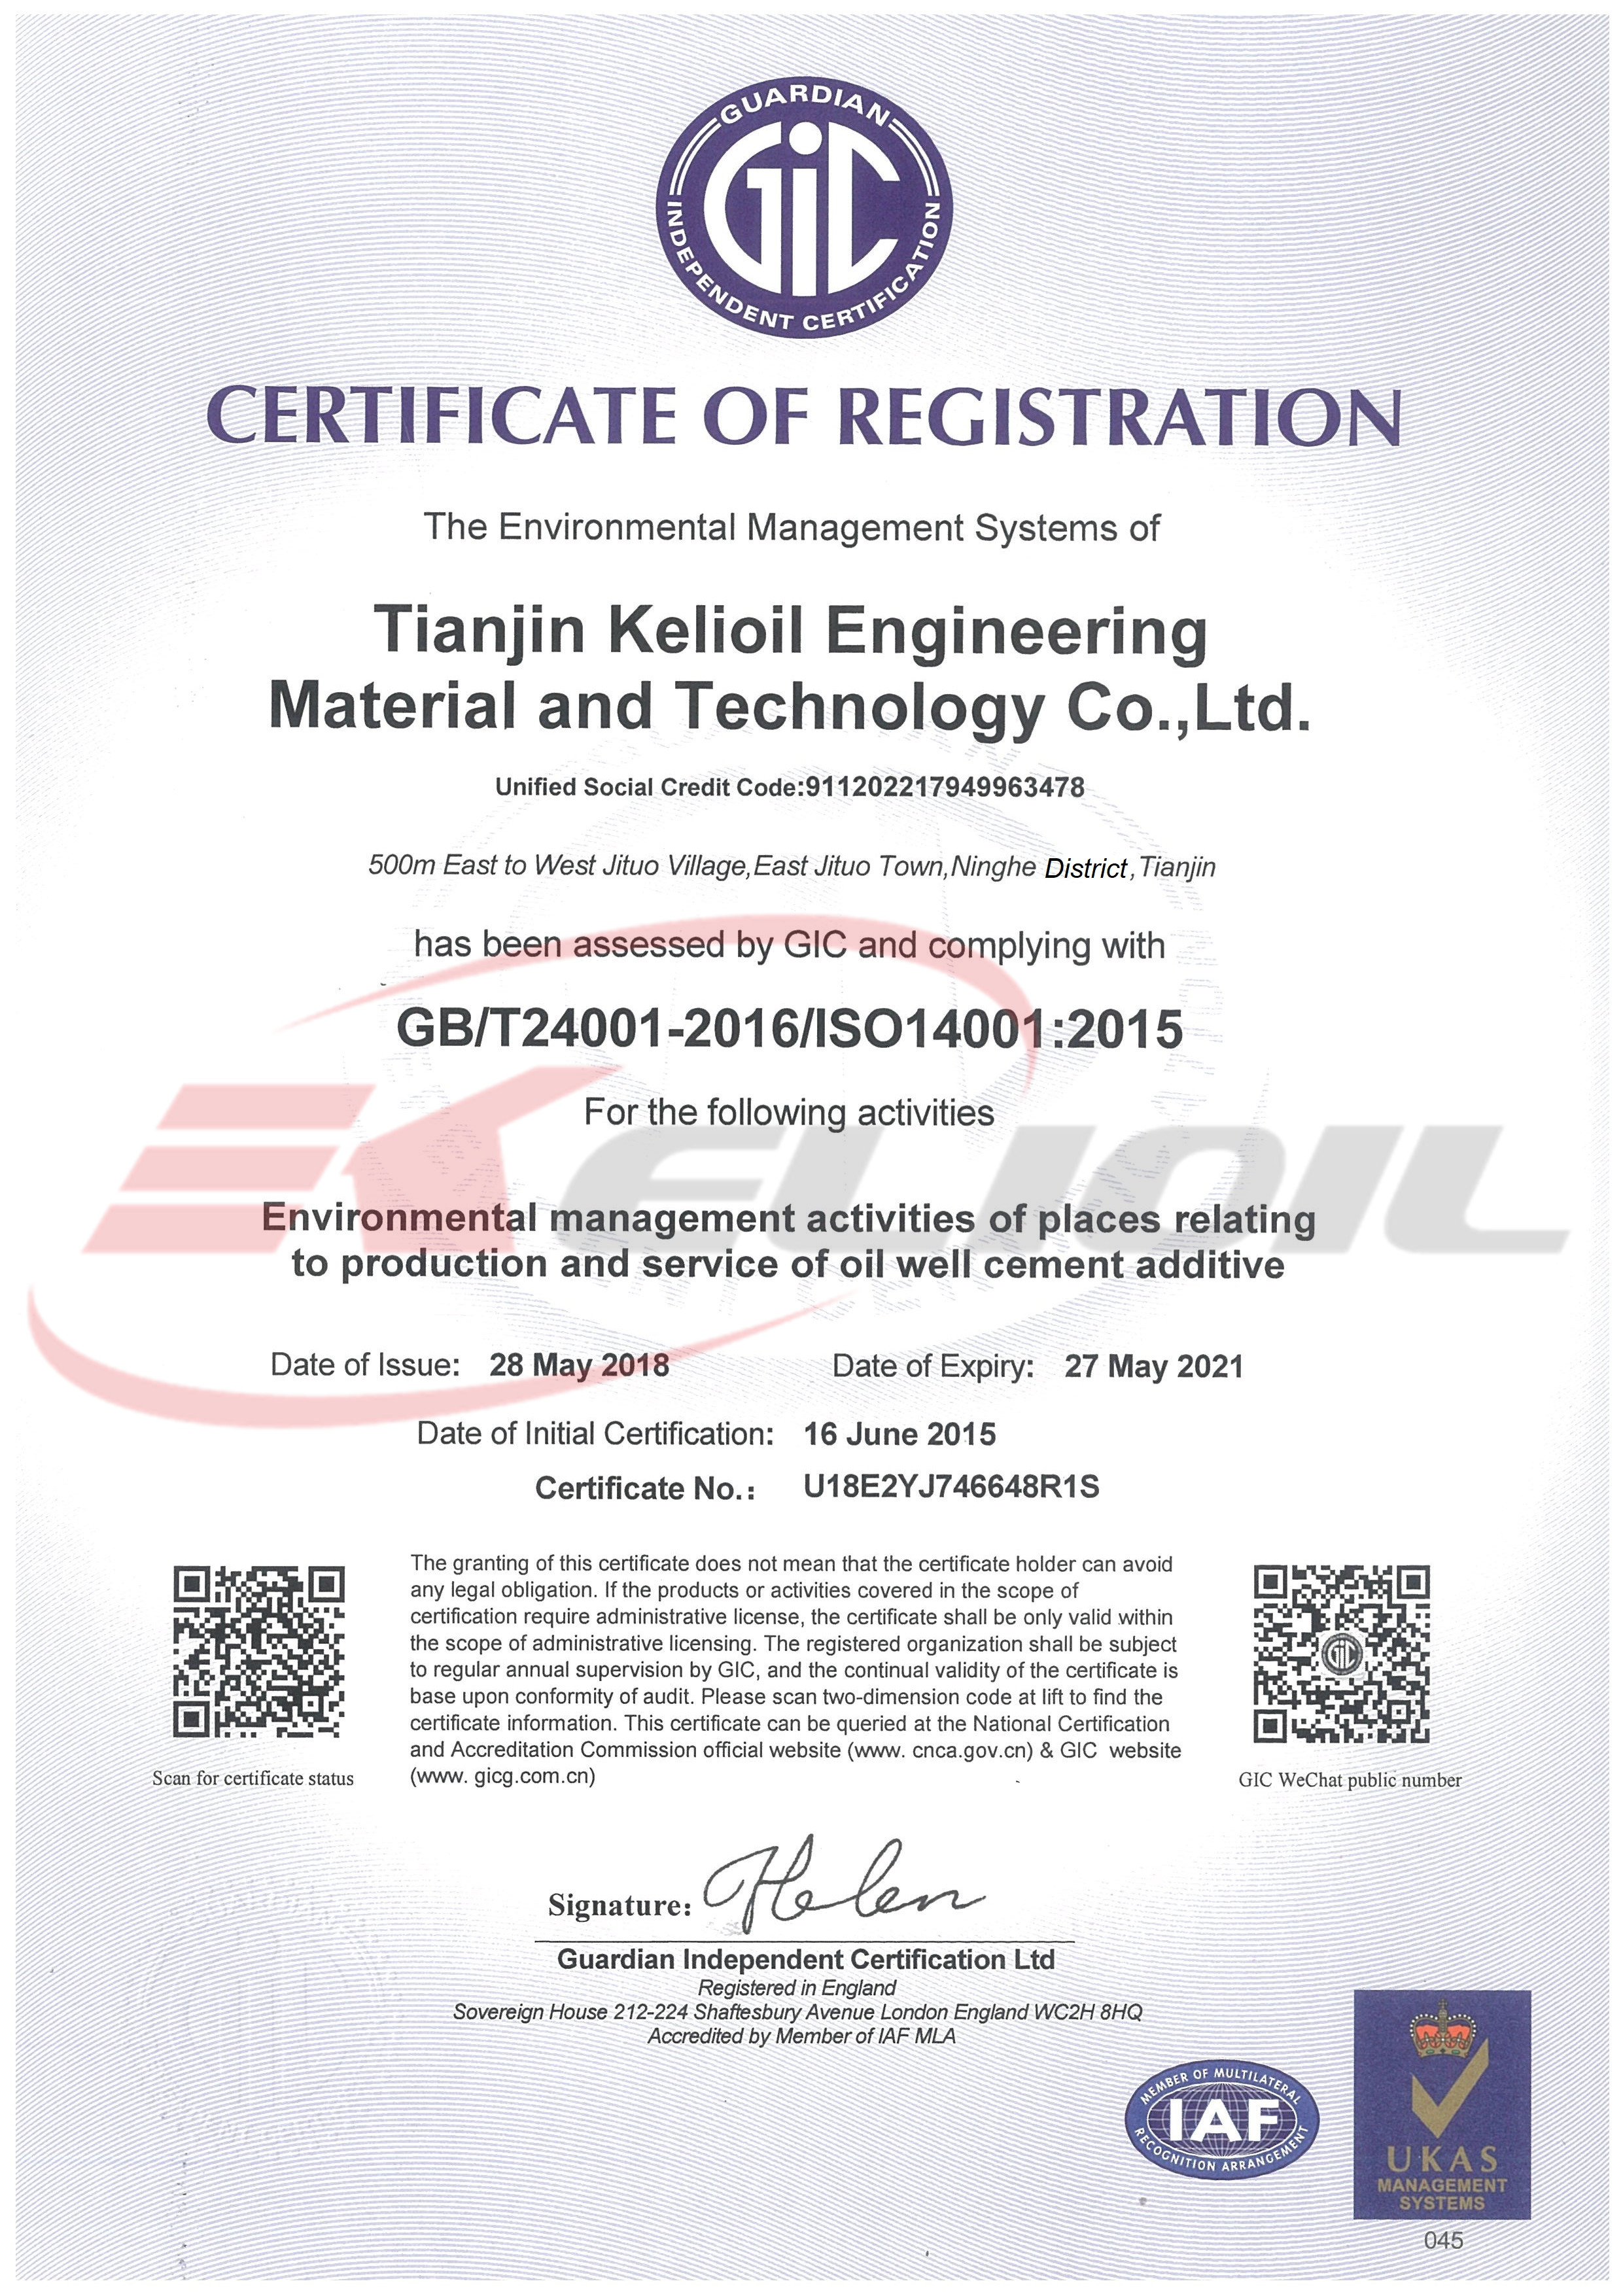 Environmental Management System Certification Certificate(English Version)